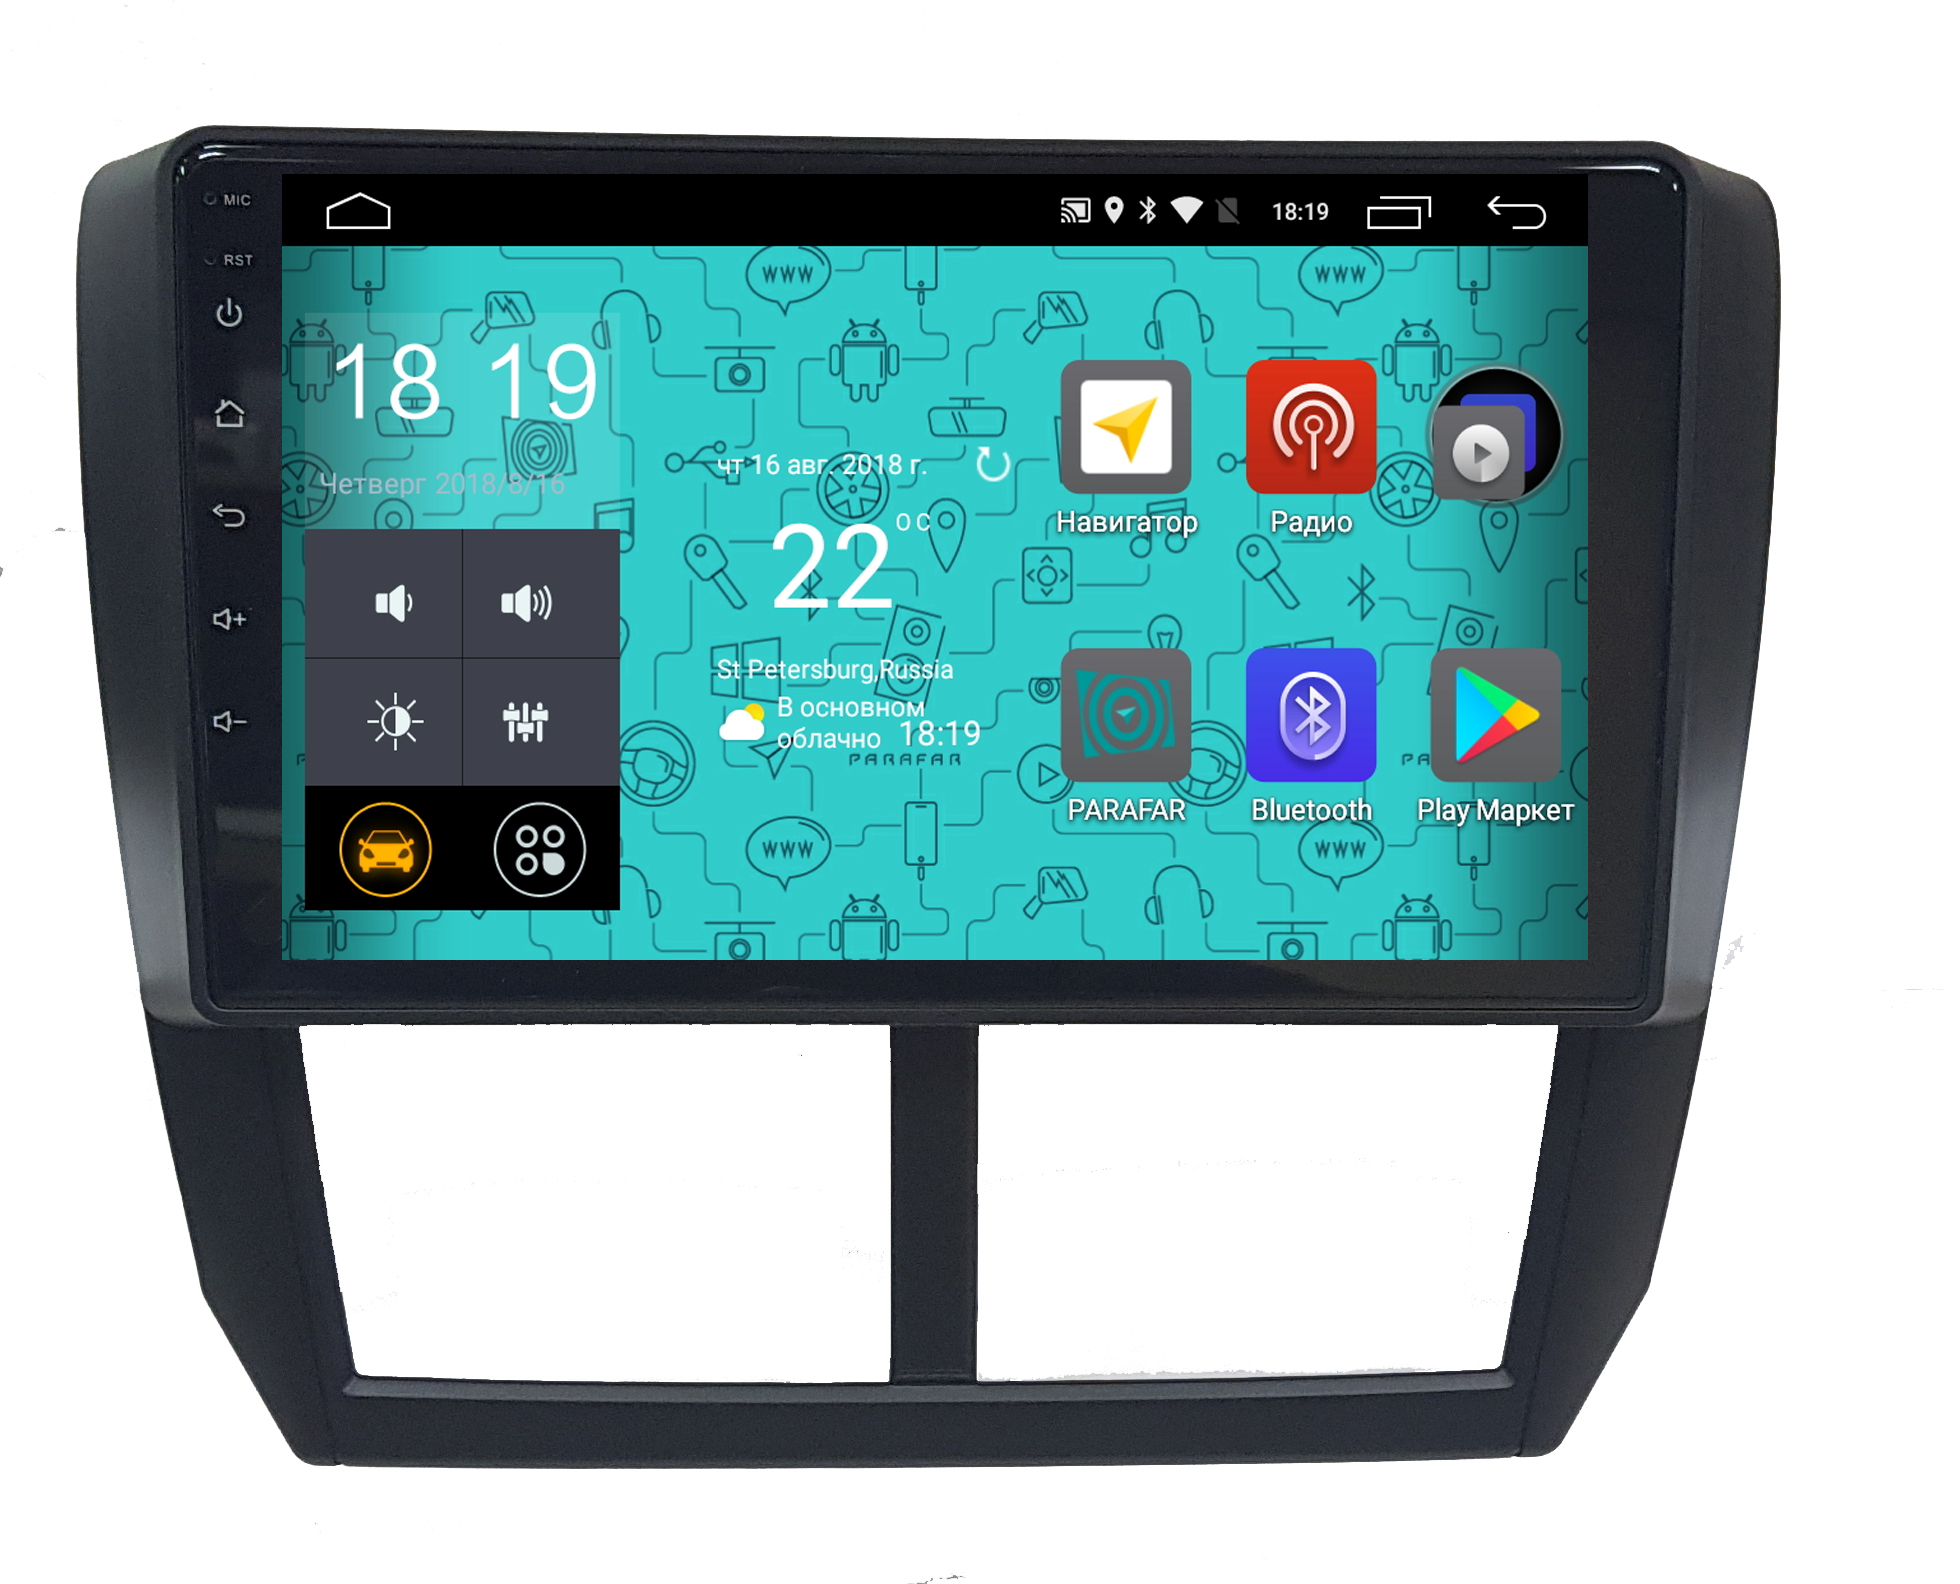 Штатная магнитола Parafar 4G/LTE с IPS матрицей для Subaru Forester 2008-2013 на Android 7.1.1 (PF636) unlocked netger 4g 150mbps sierra wireless router aircard 770s 4g lte mobile wifi hotspot dongle 4g pocket wifi